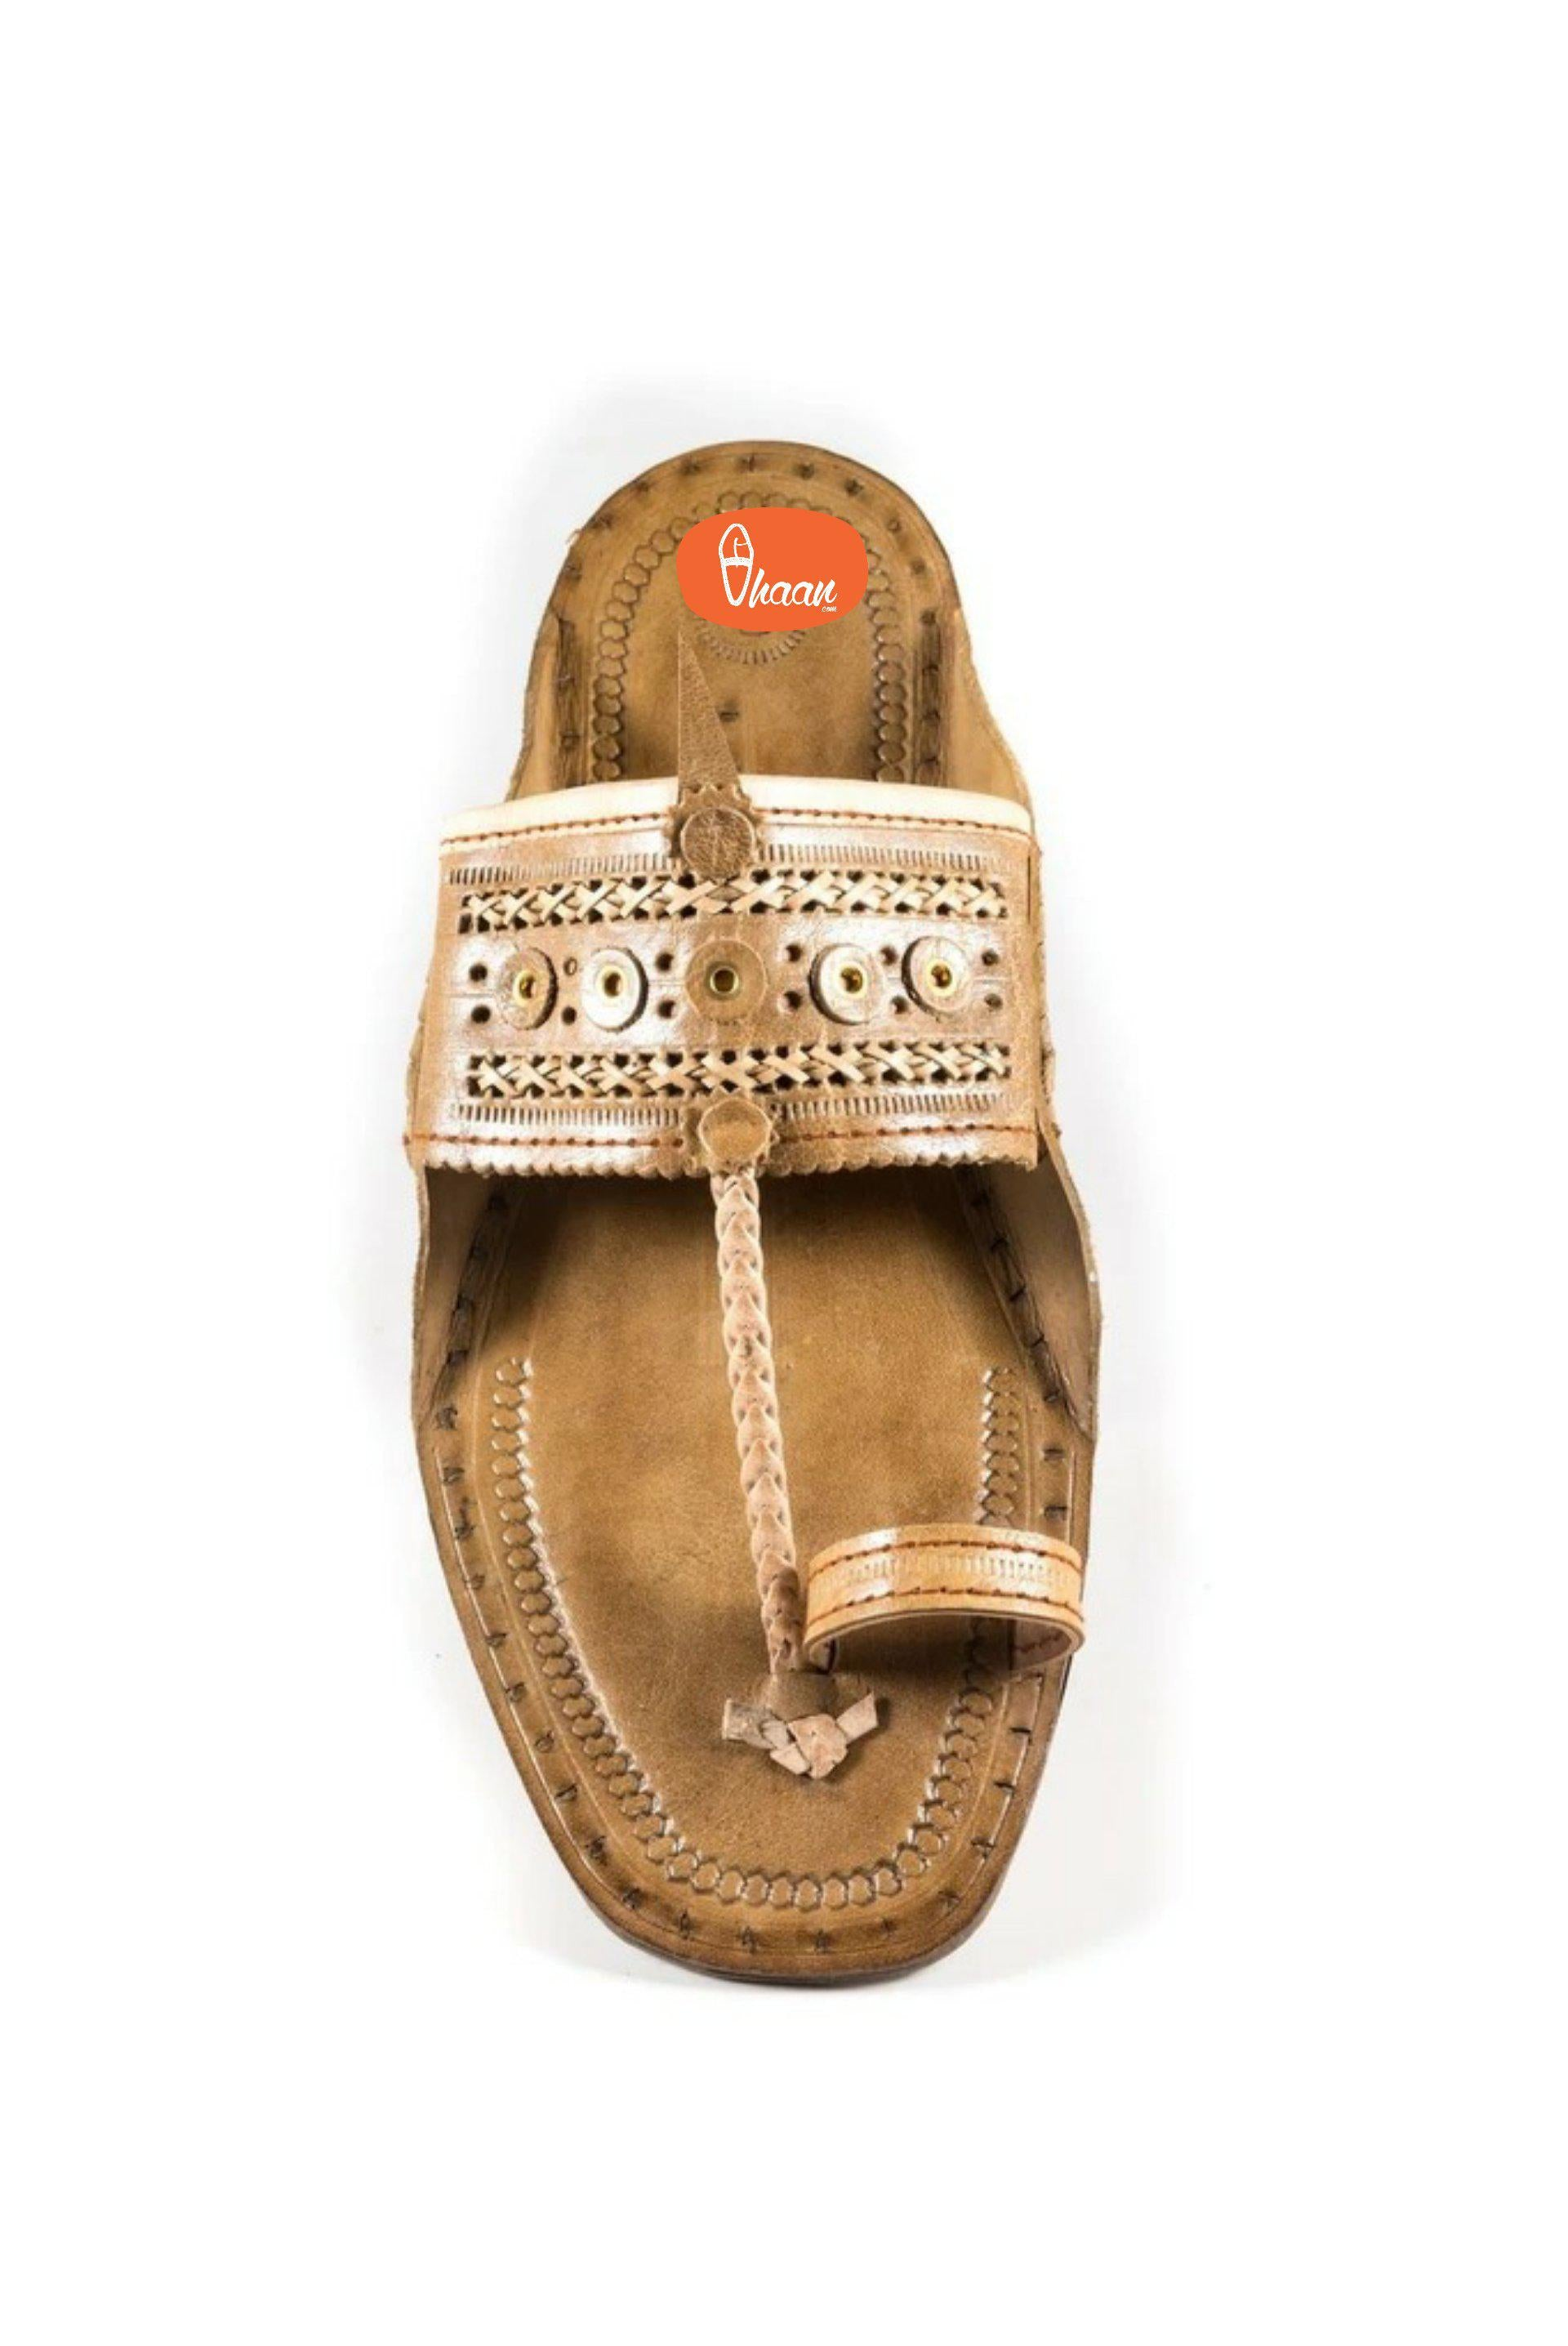 Special Moja(T) Shape Broad Kolahpuri Chappal For Men  Barabandi Punch Belt  Design